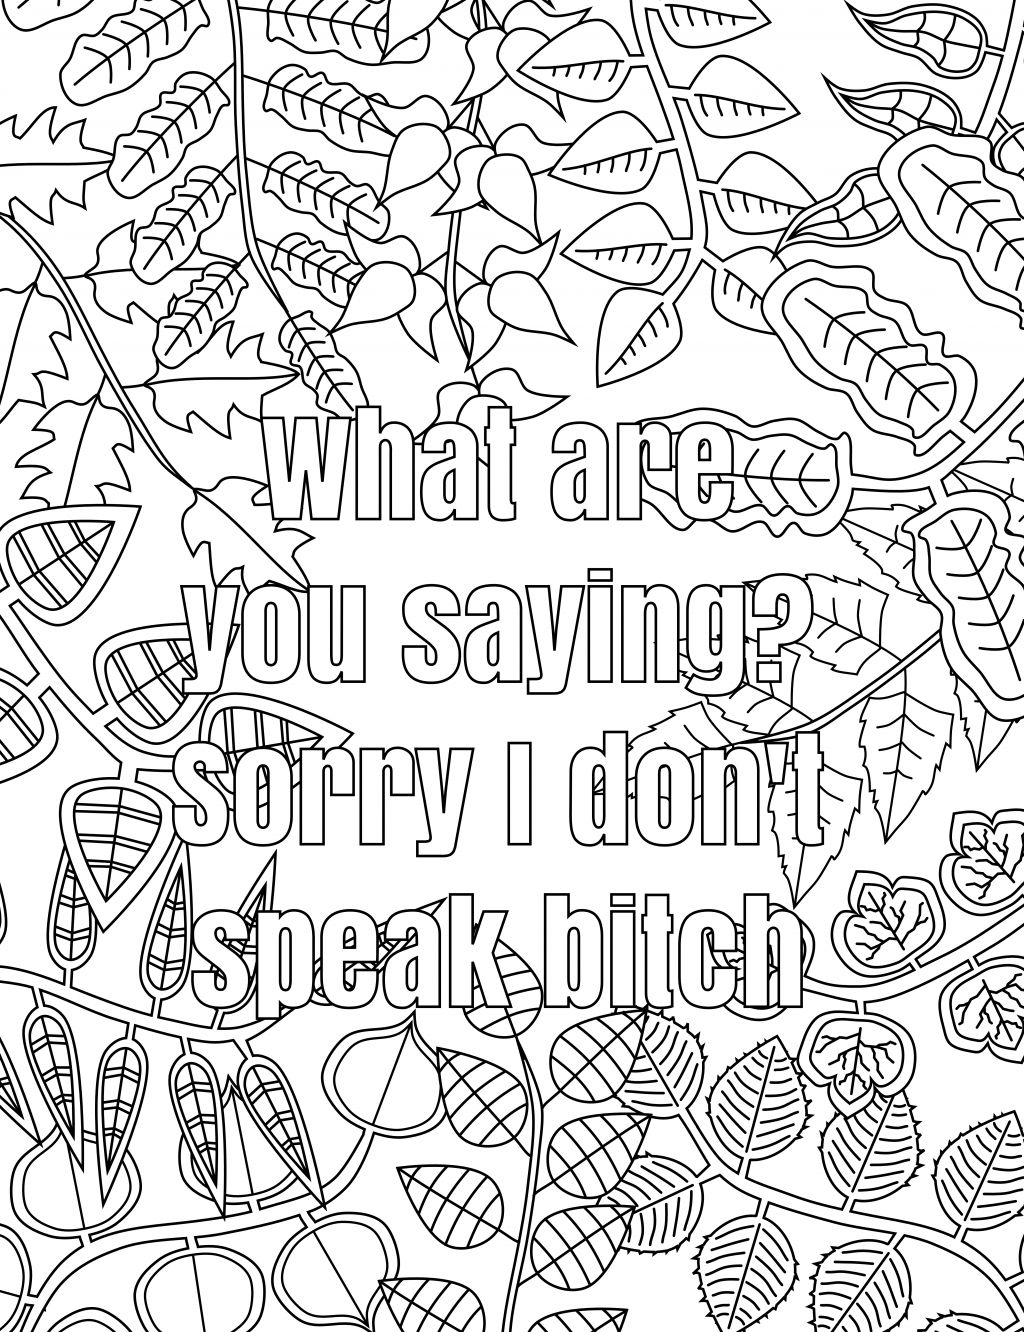 Coloring Pages ~ Coloring Pages The Swear Word Book By Hannah The